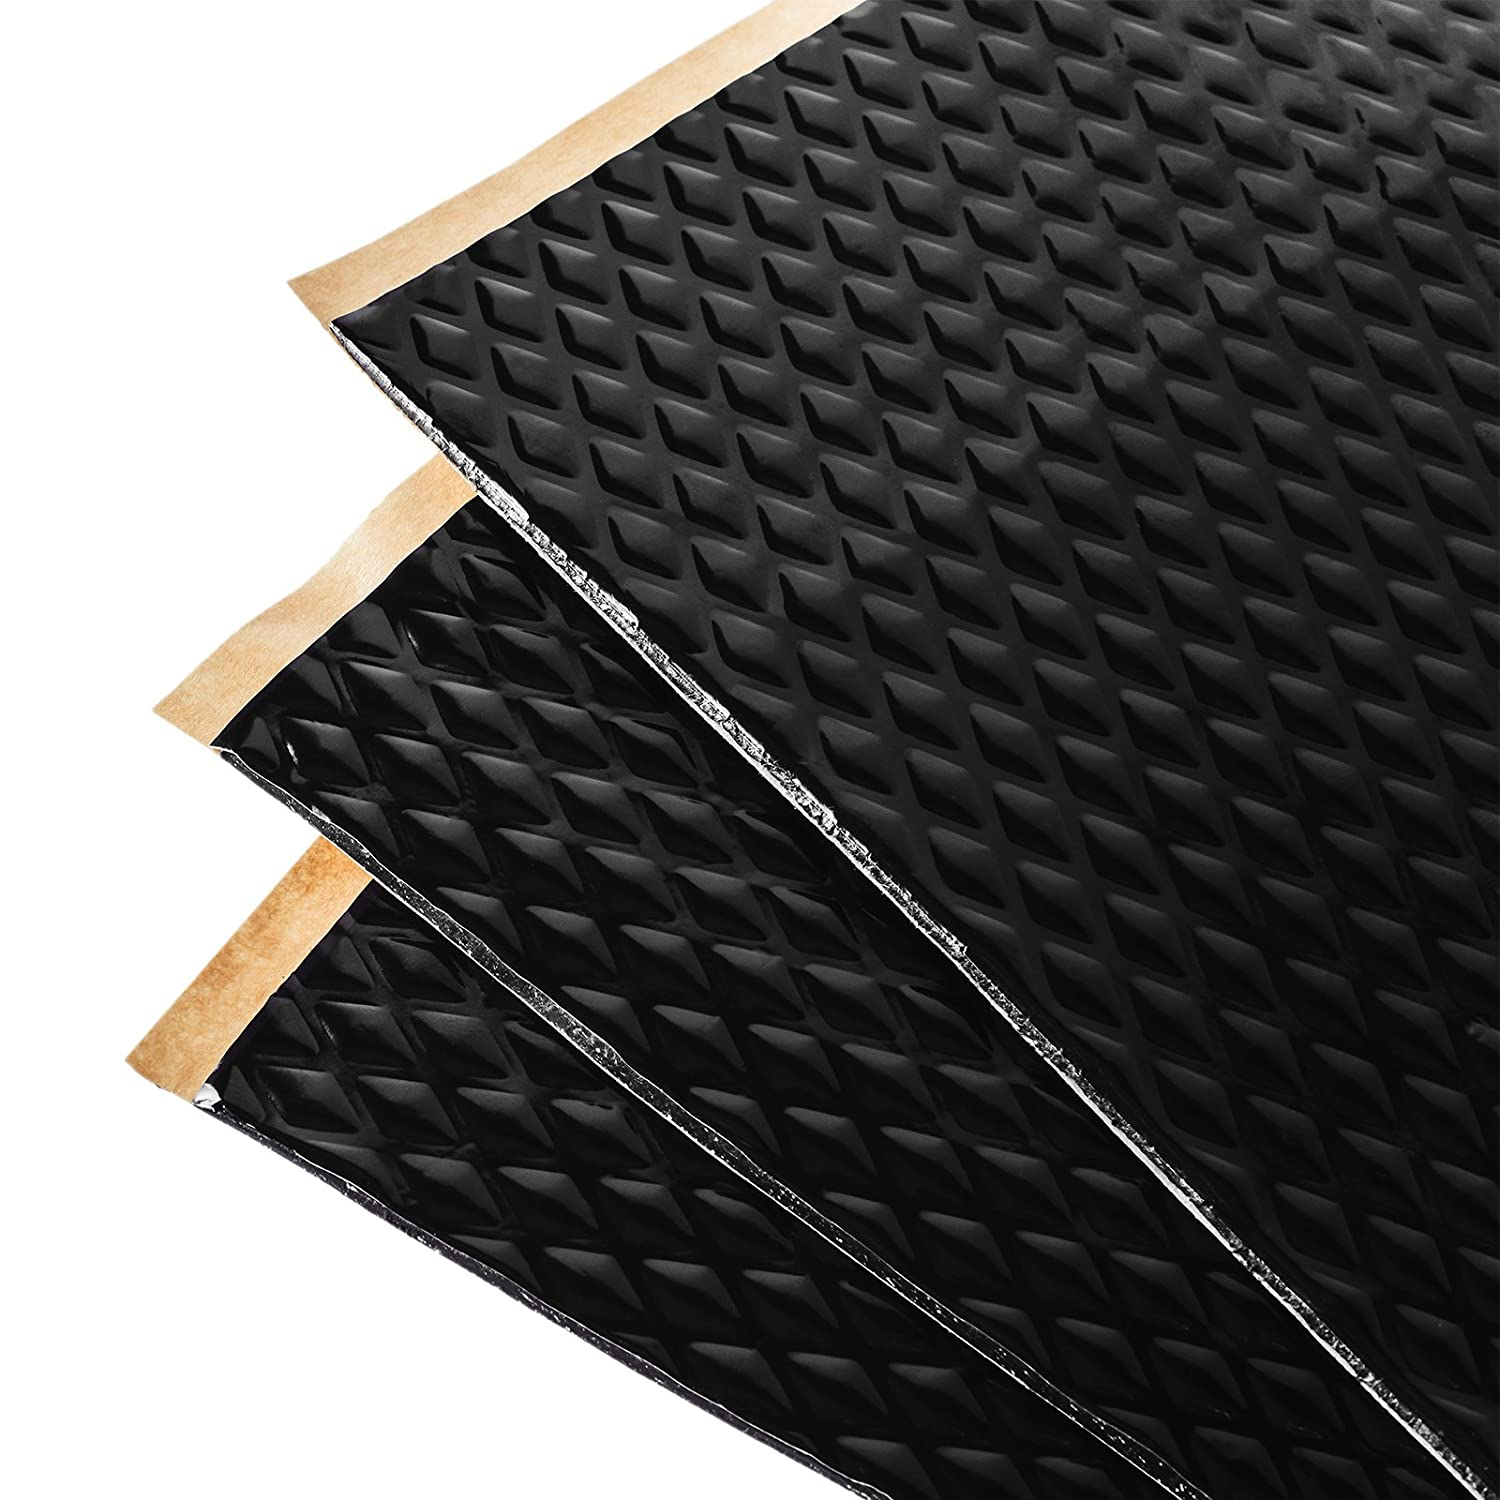 Noico Black 80 Mil 36 Sq Ft Car Sound Deadening, Butyl Automotive Deadener Restoration mat and Noise dampening Insulation Noico Solutions DMM1